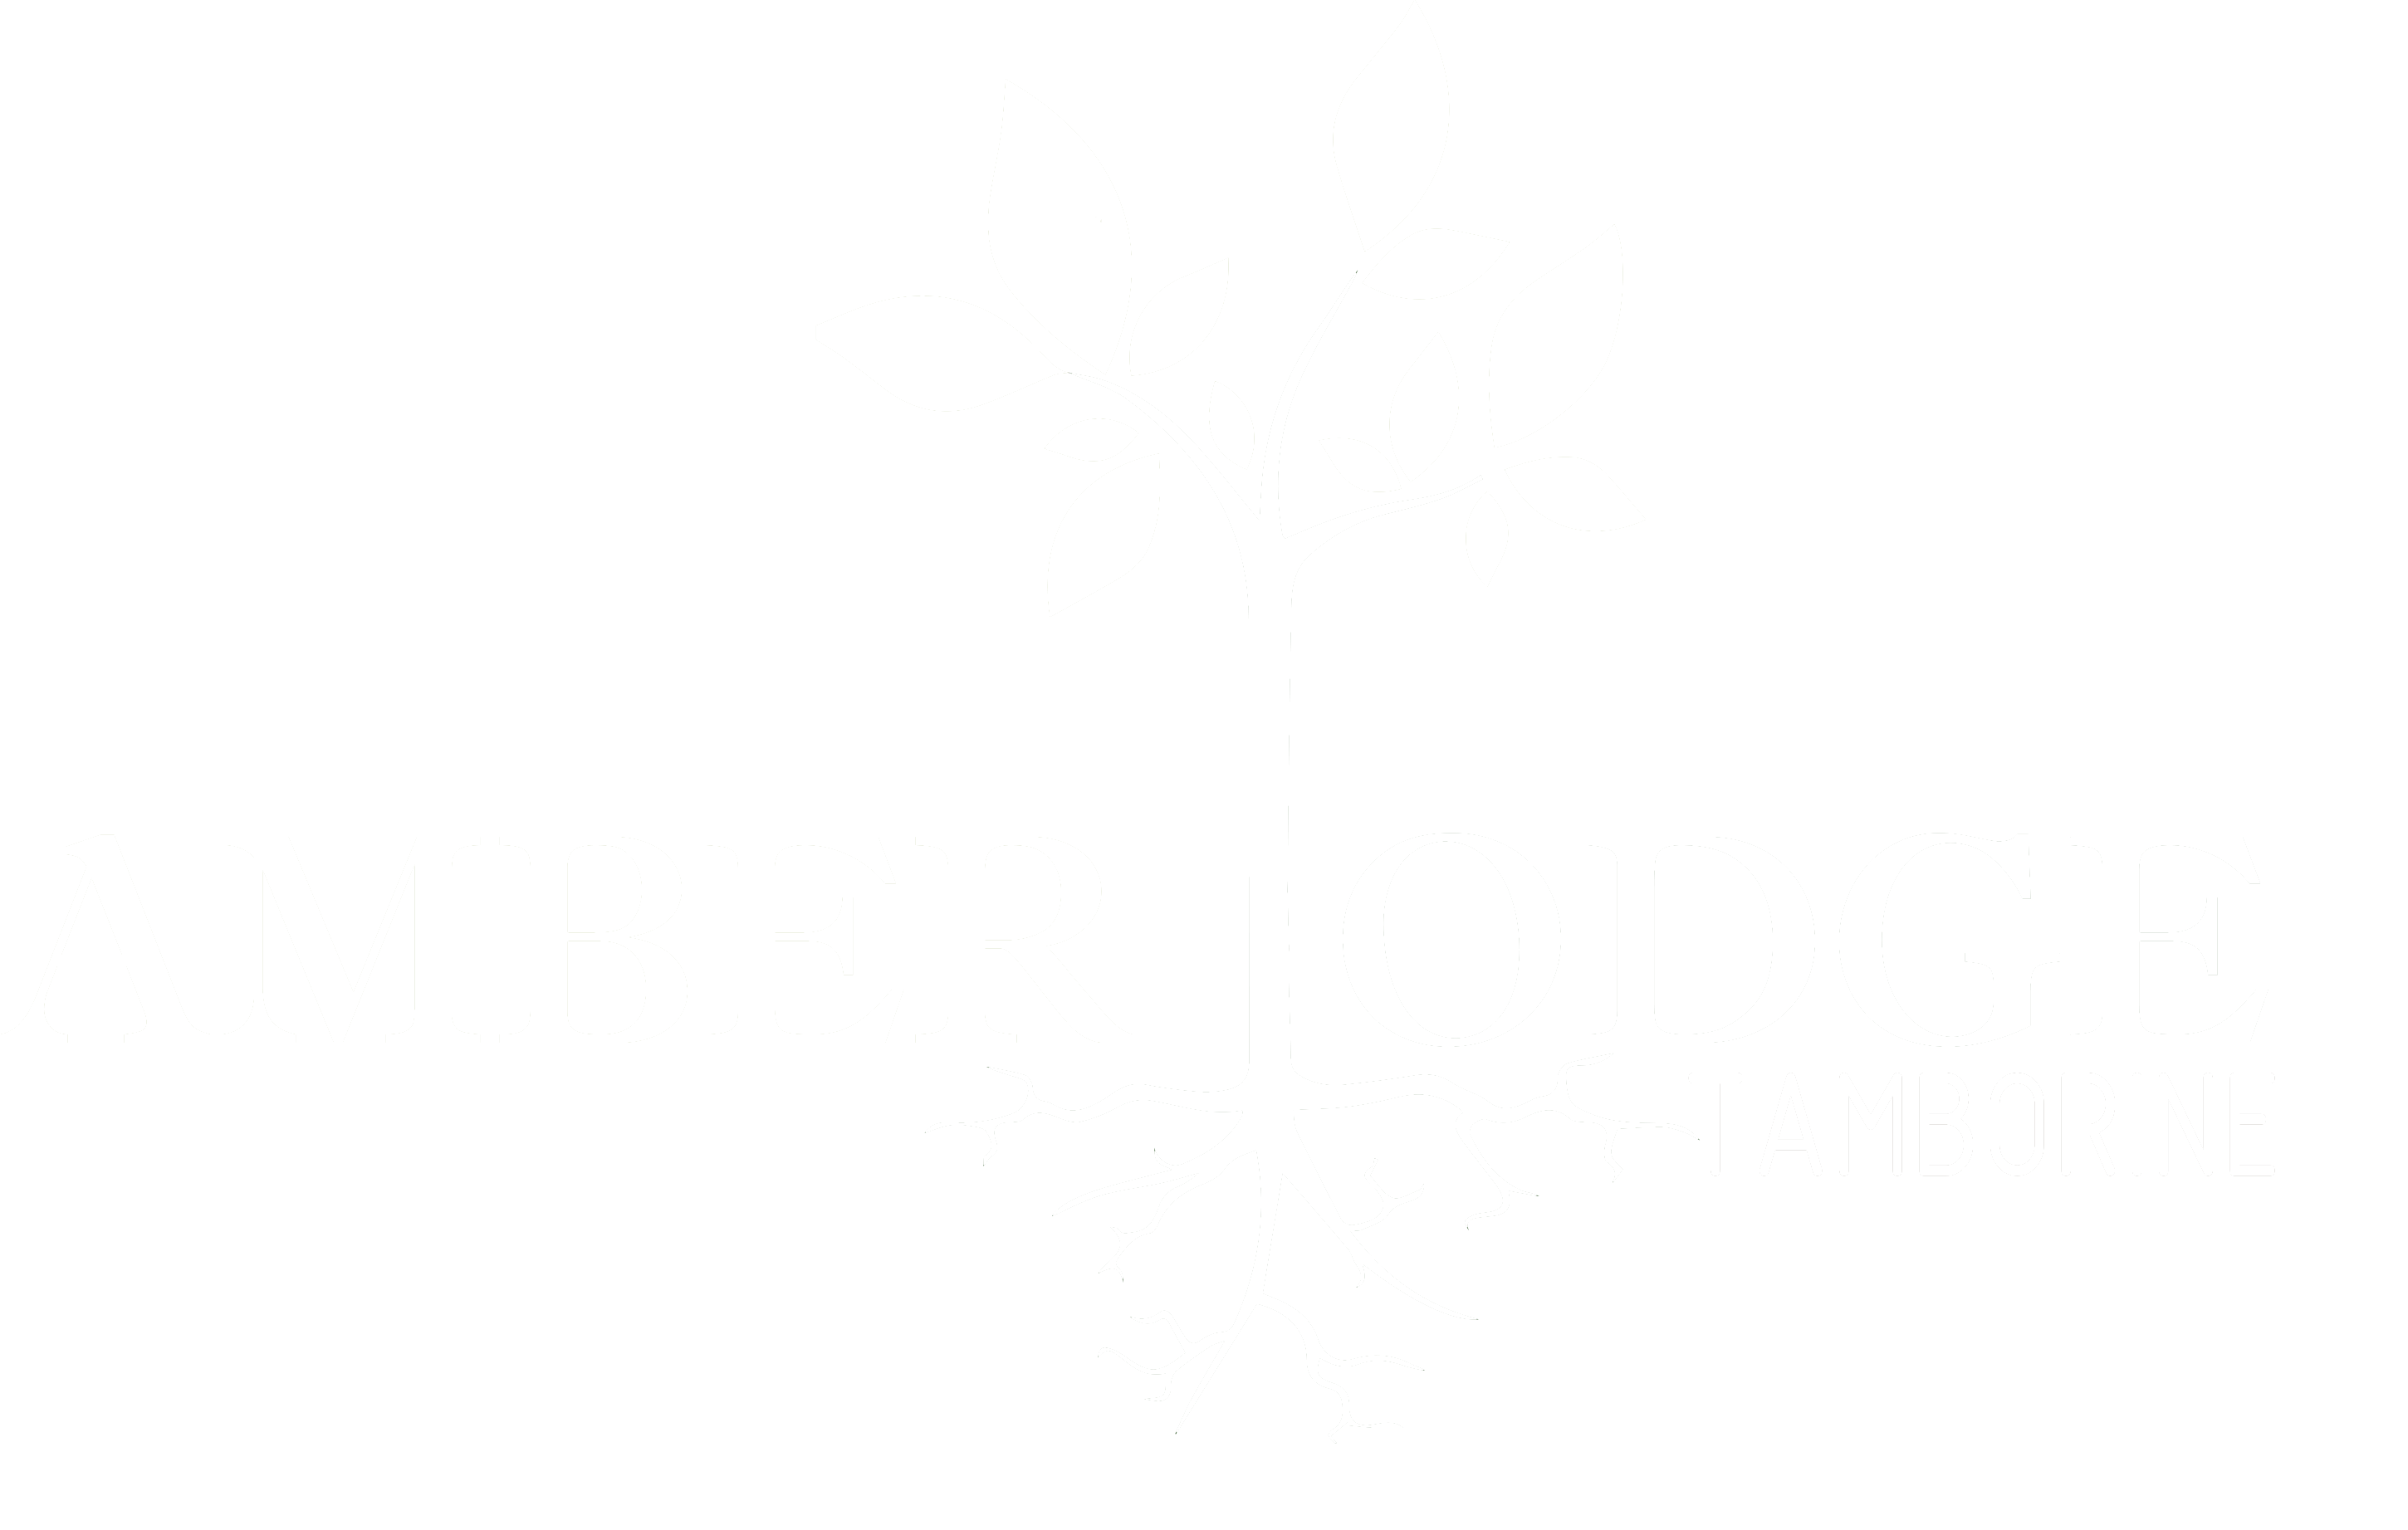 Amber Lodge Tamborine